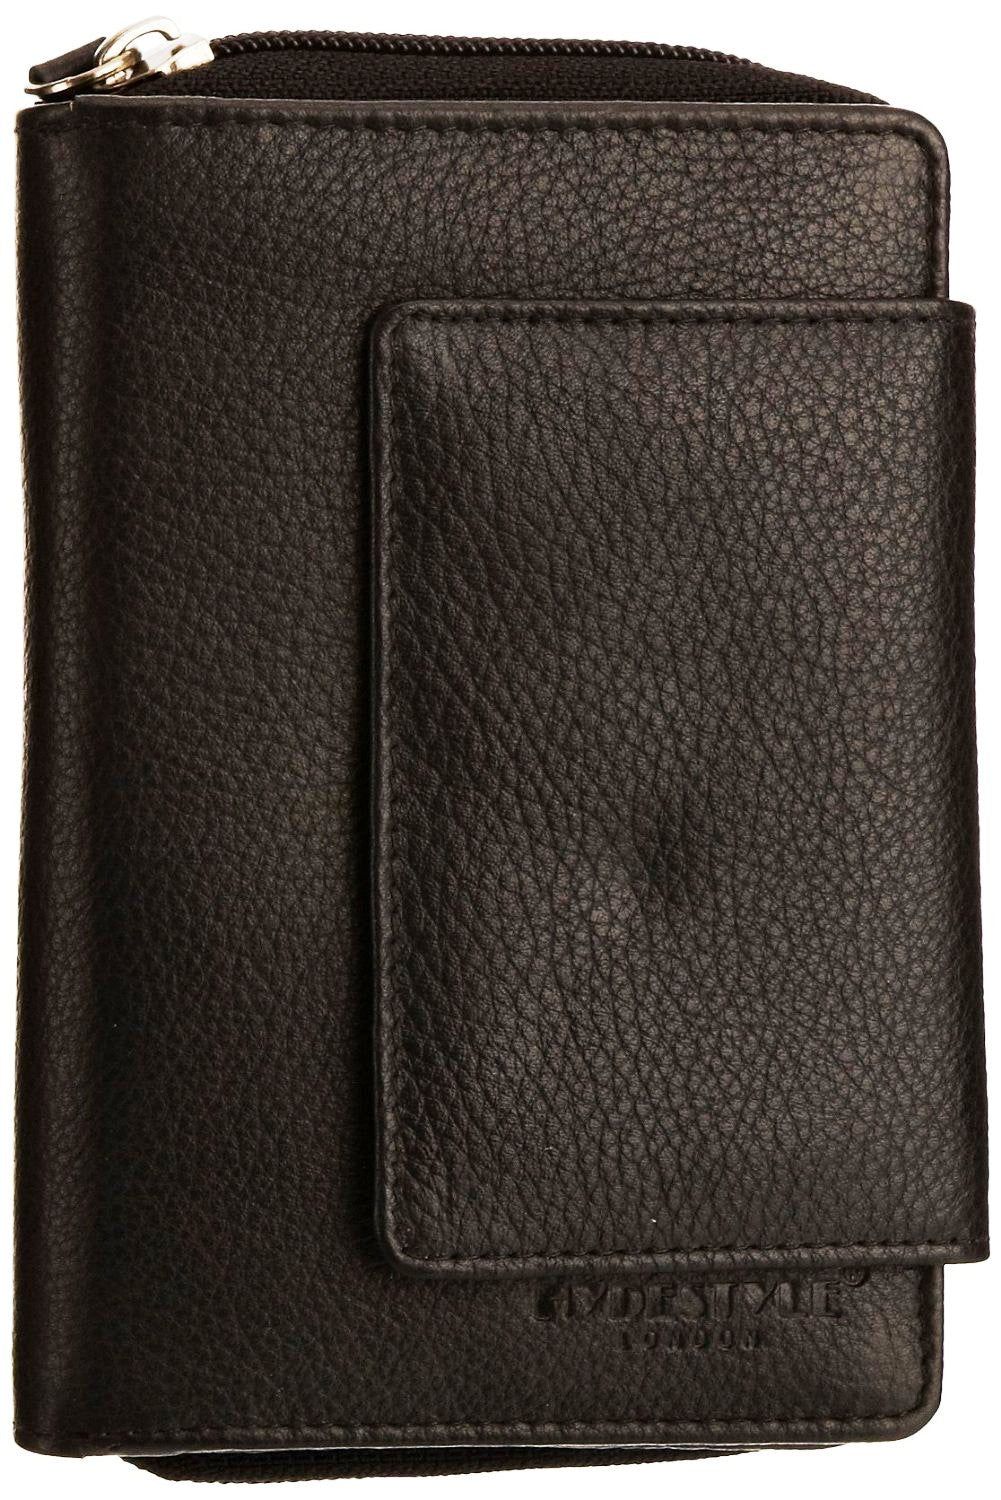 Pratico - women leather flap wallet #LW02 Black